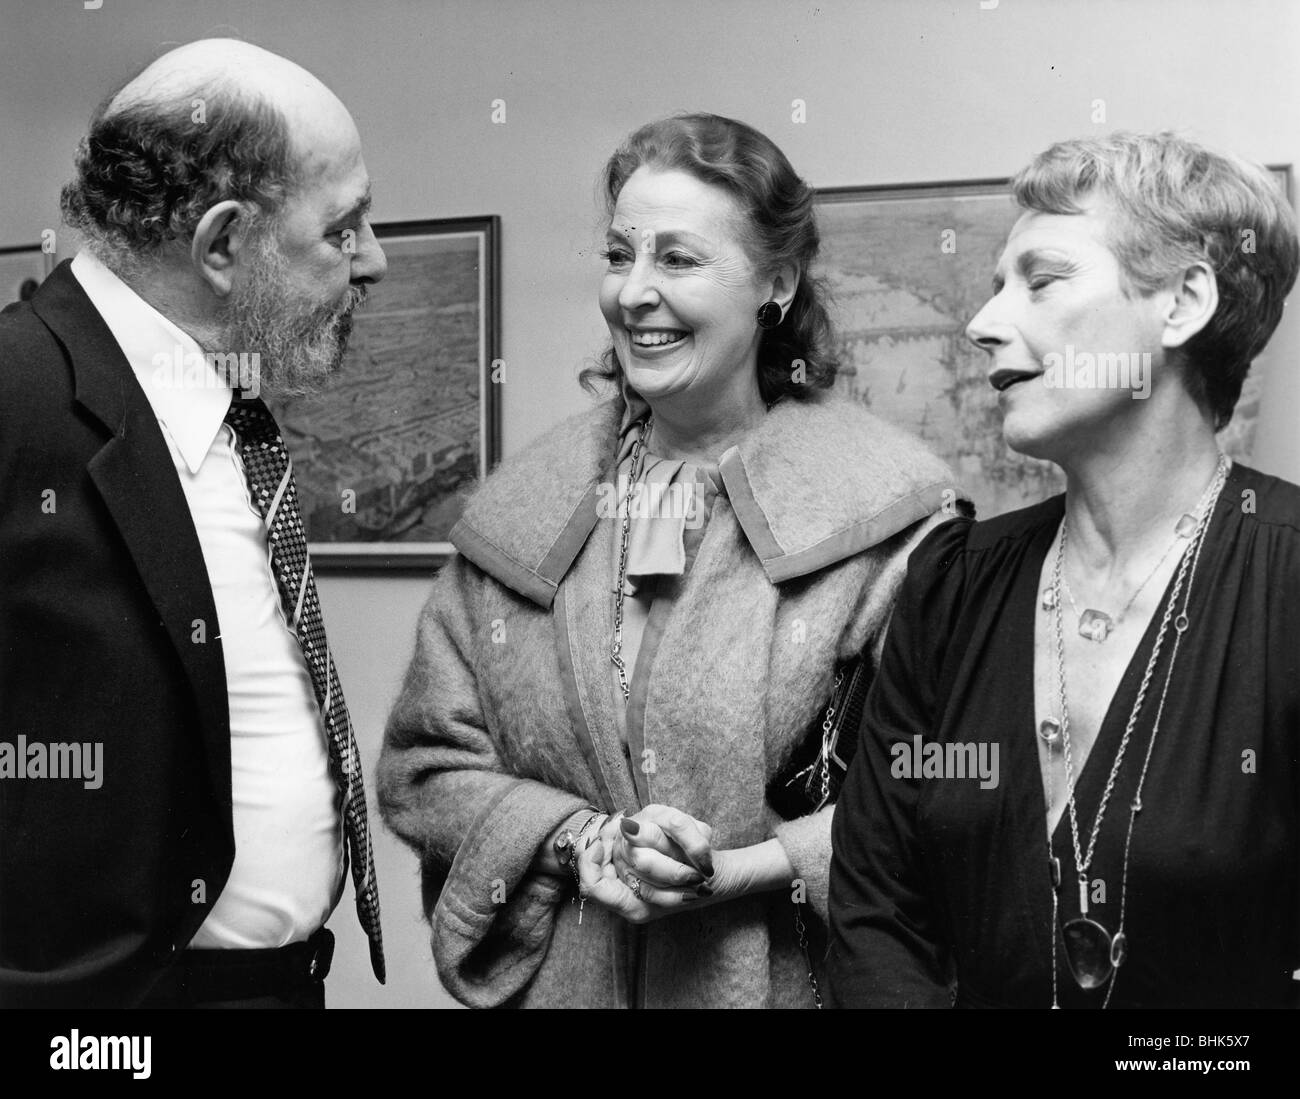 Alfred Marks, British comedian, with Valerie Hobson & Helen Shapiro. - Stock Image